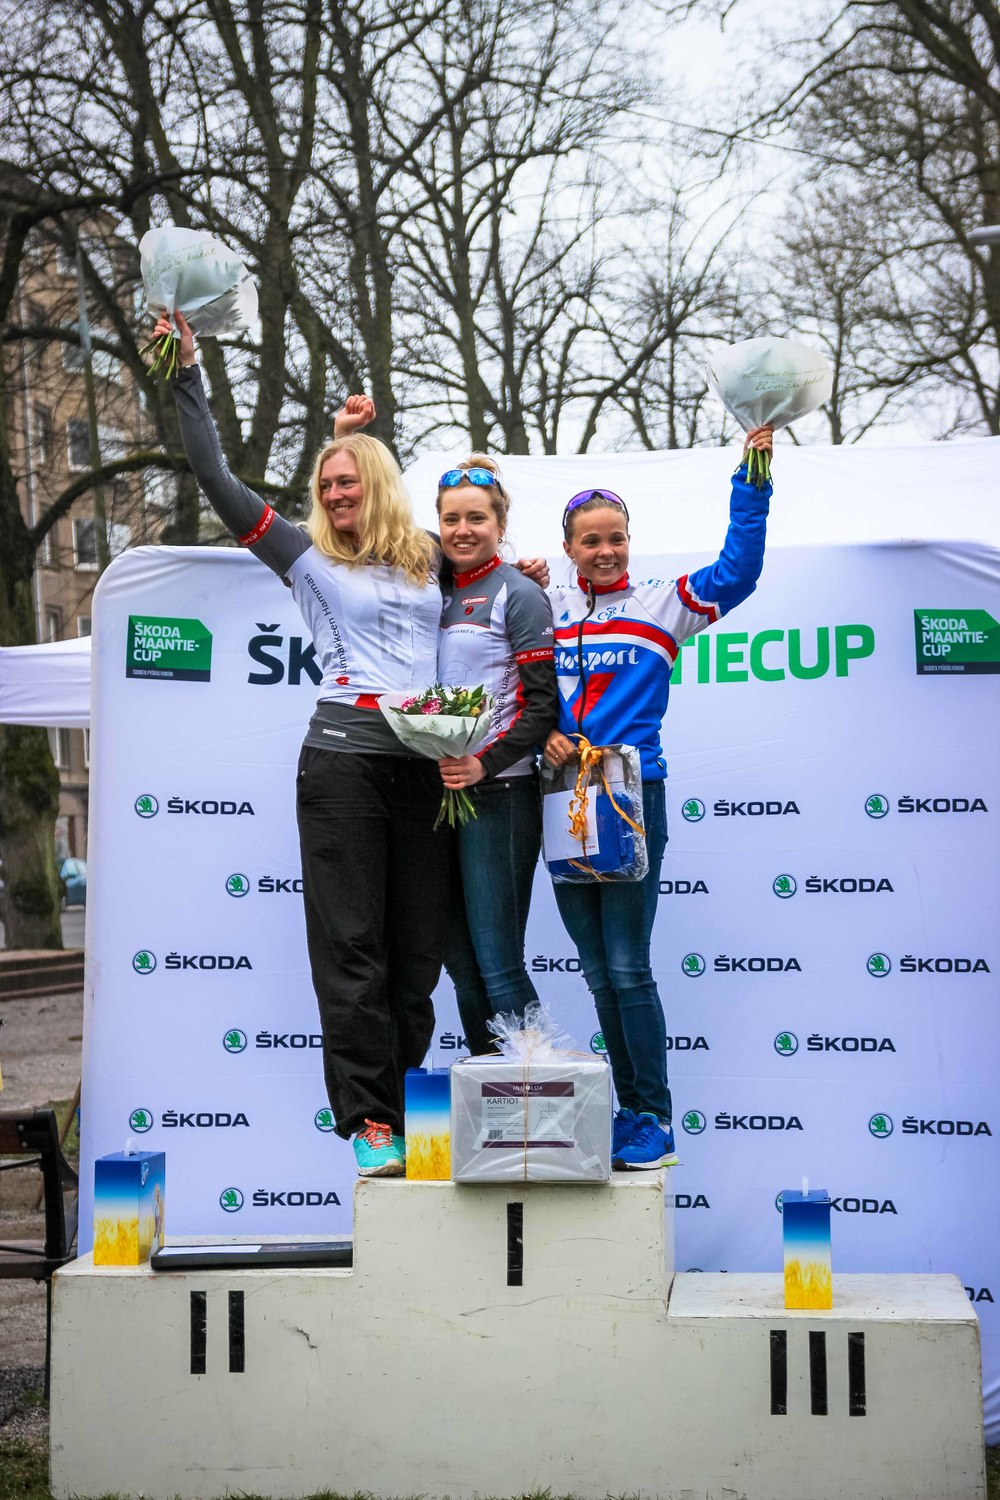 Women podium from left: Onger, Törmänen, Väkervä